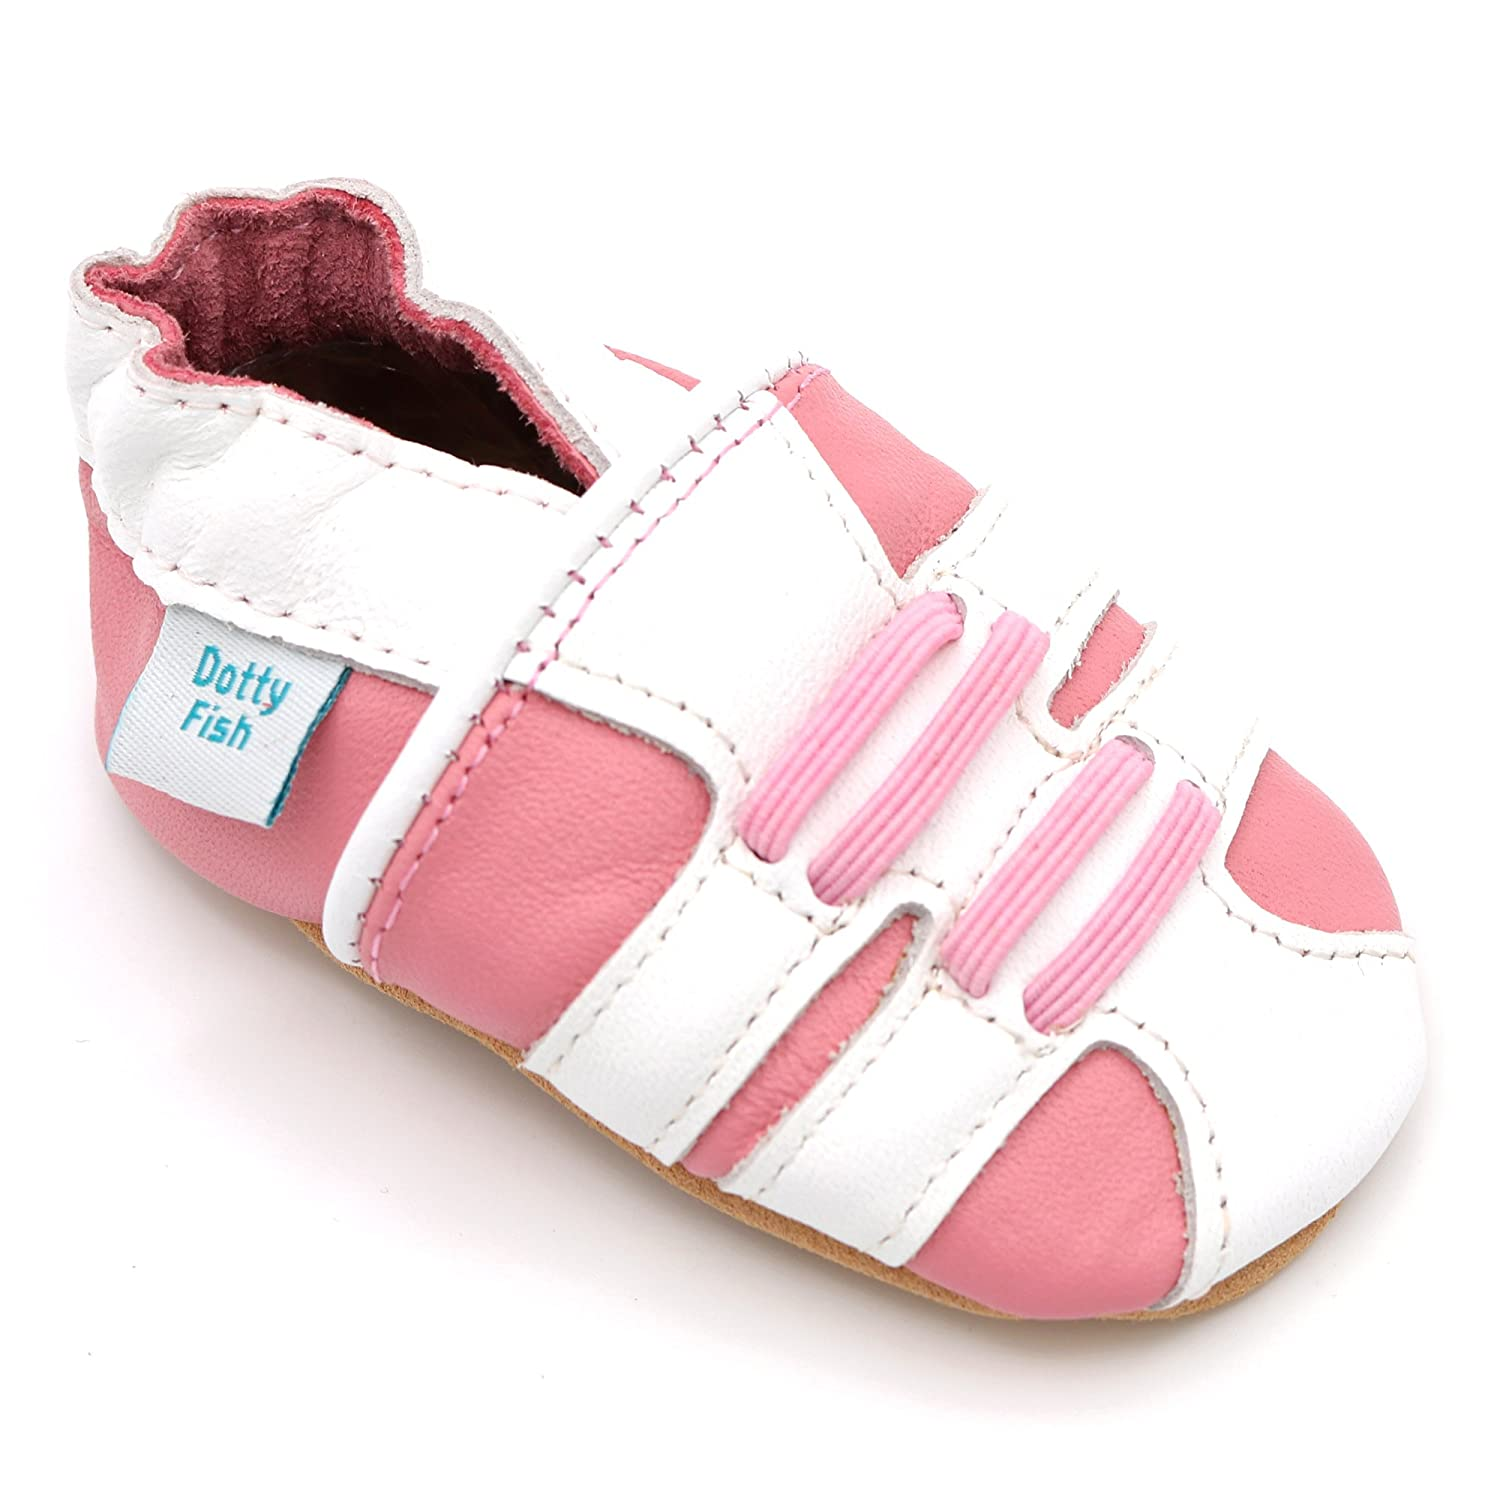 Dotty Fish Soft Leather Baby Shoes. Toddler Shoes. Pretty Pink Hearts, Sporty Trainers Christening Shoes Girls. Newborn to 2-3 Years FBA-COHEARTS-P